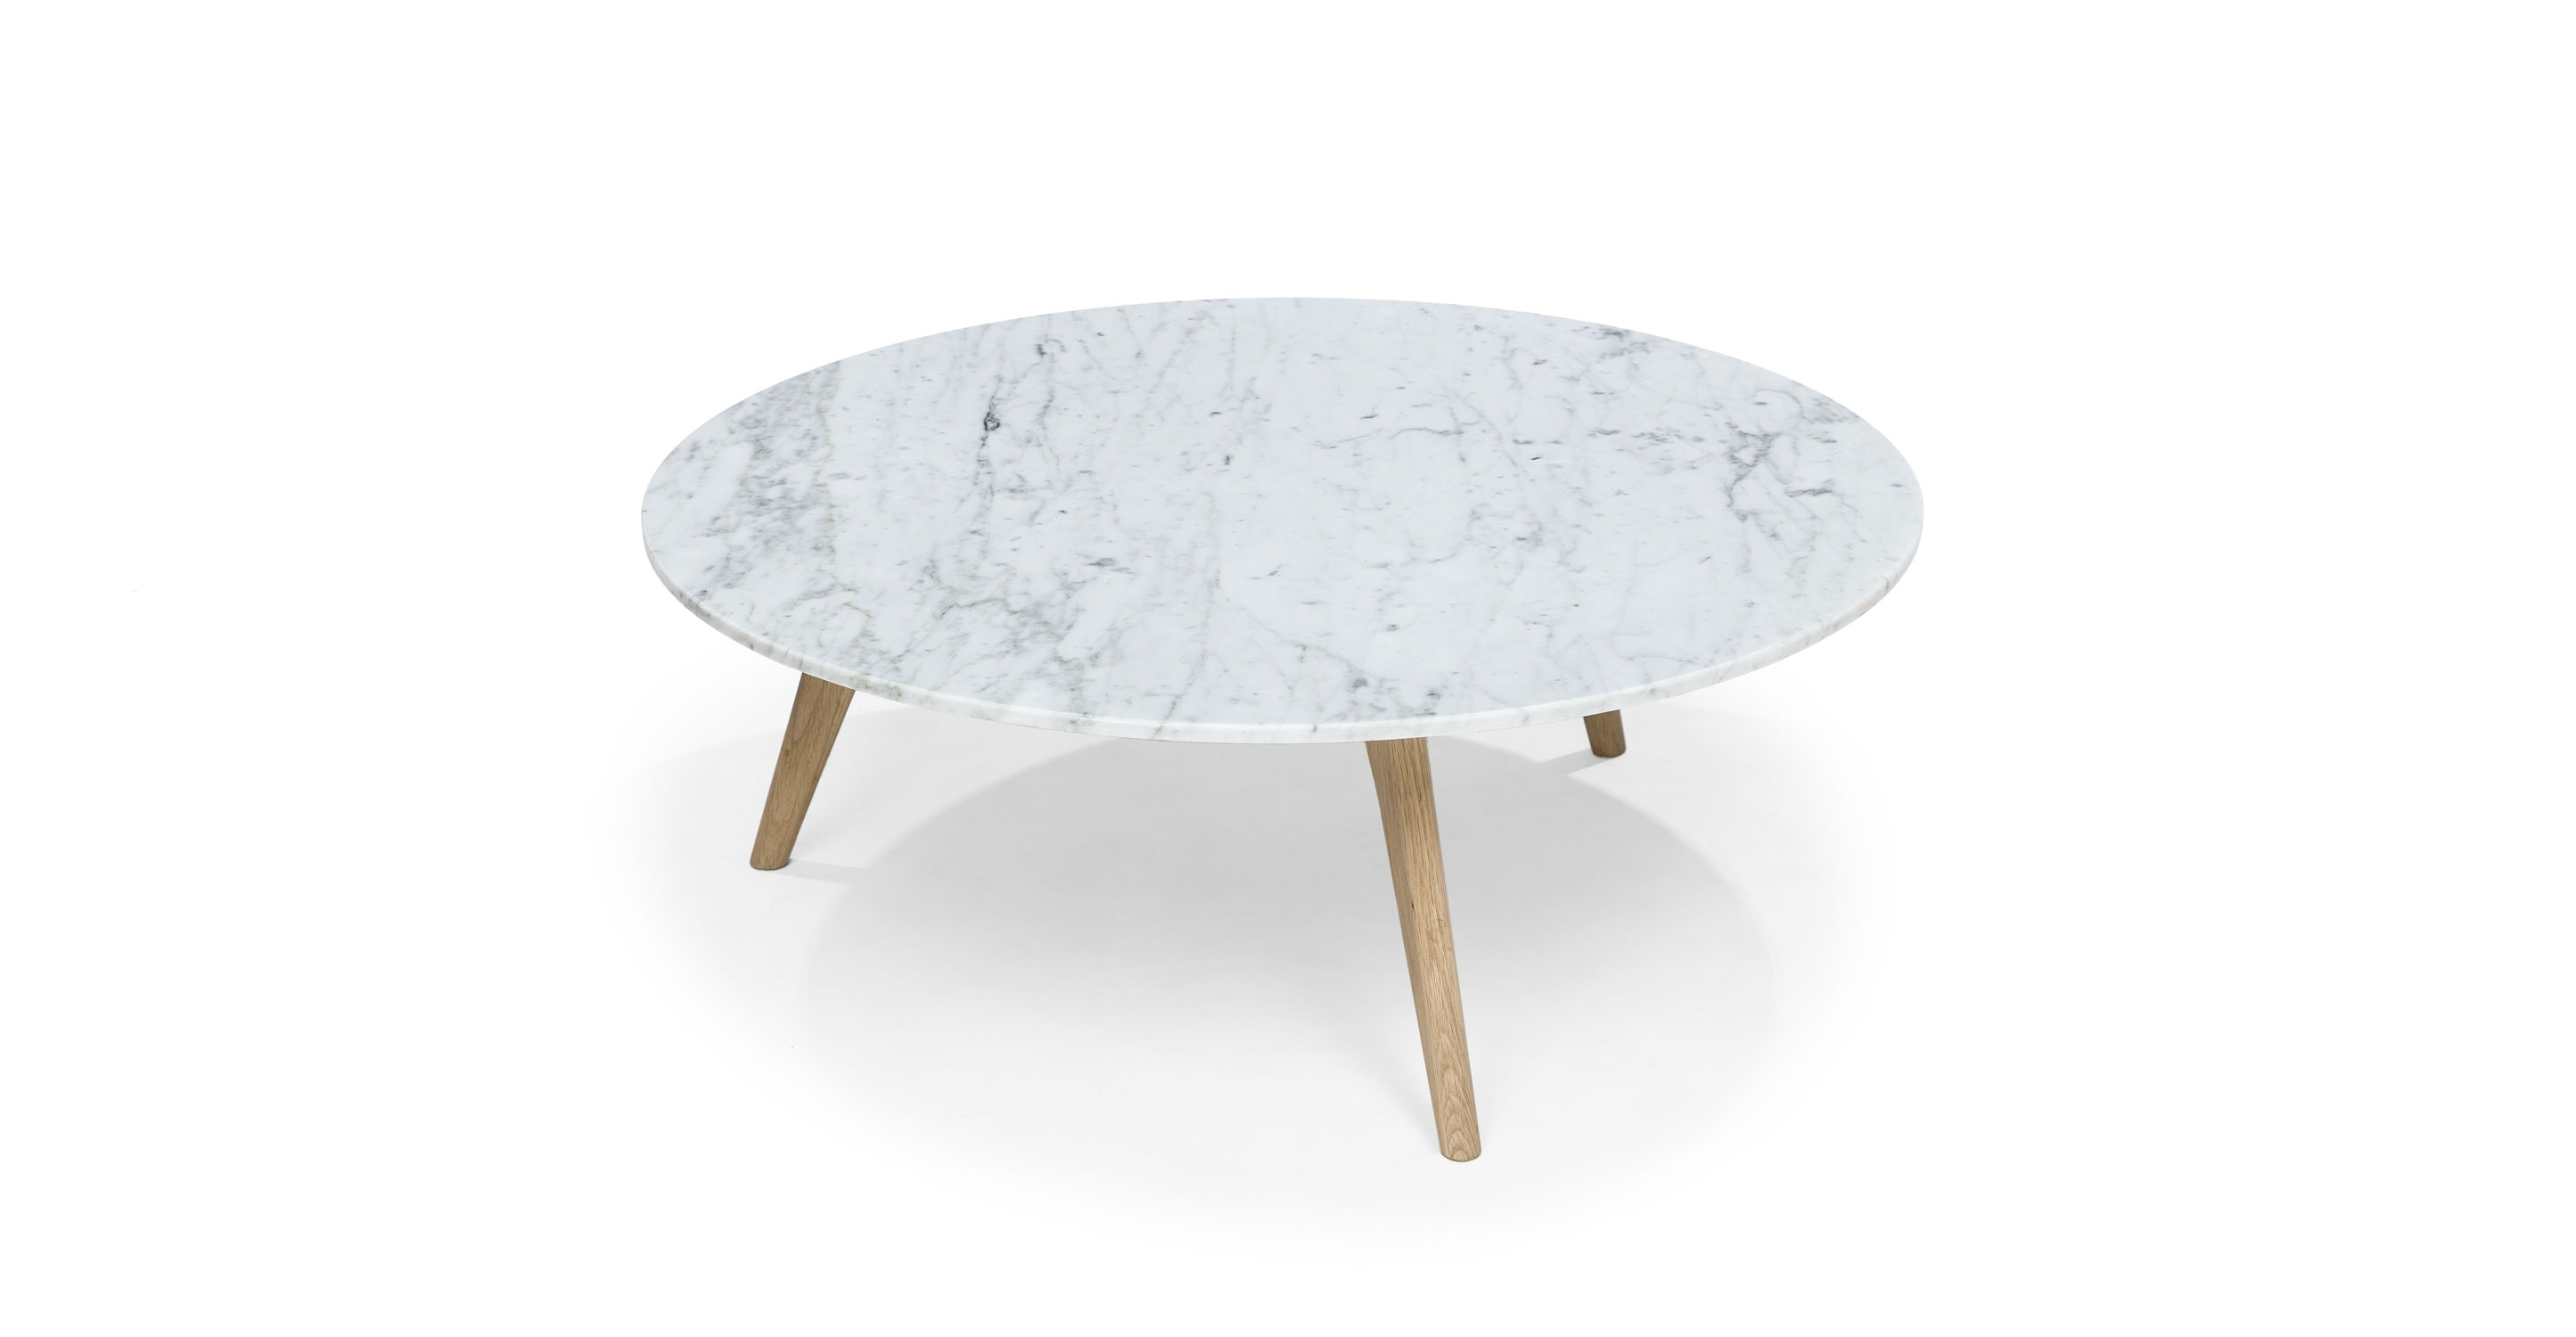 mara oak coffee table article wood anton accent side sofa gold home decor pottery barn dining inexpensive chairs cream bedside lamps and mirror ice container round marble bamboo